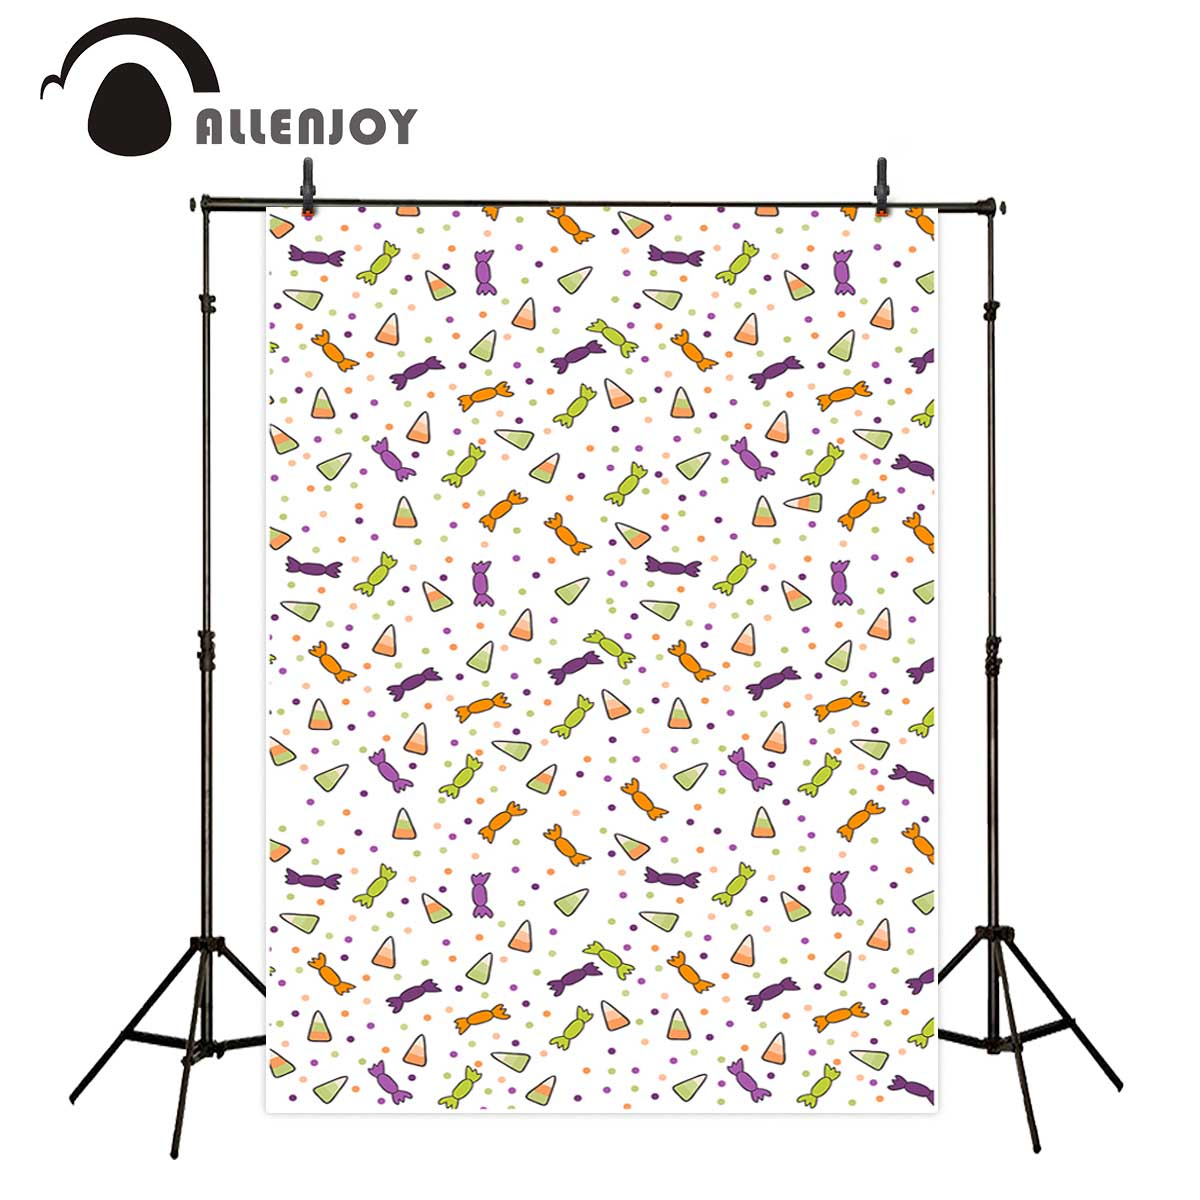 Allenjoy photography backdrop Spotted Watermelon Child Candy Photo professional festival backdrop photographic customize props allenjoy photography backdrop spotted